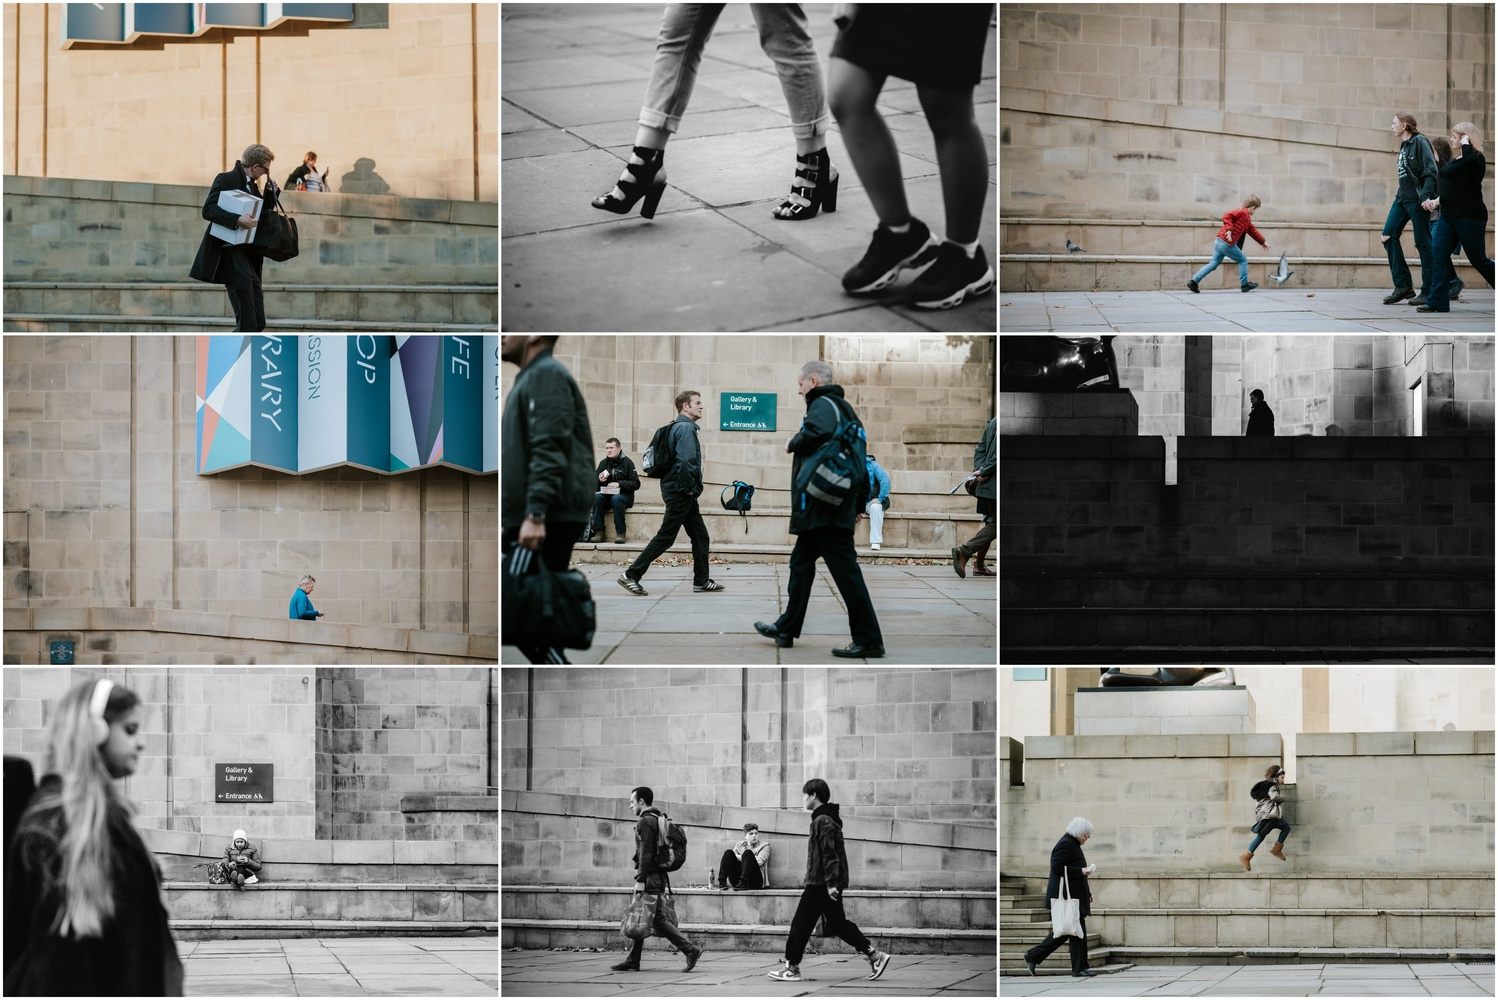 A collage of street photographs of people walking in the city.